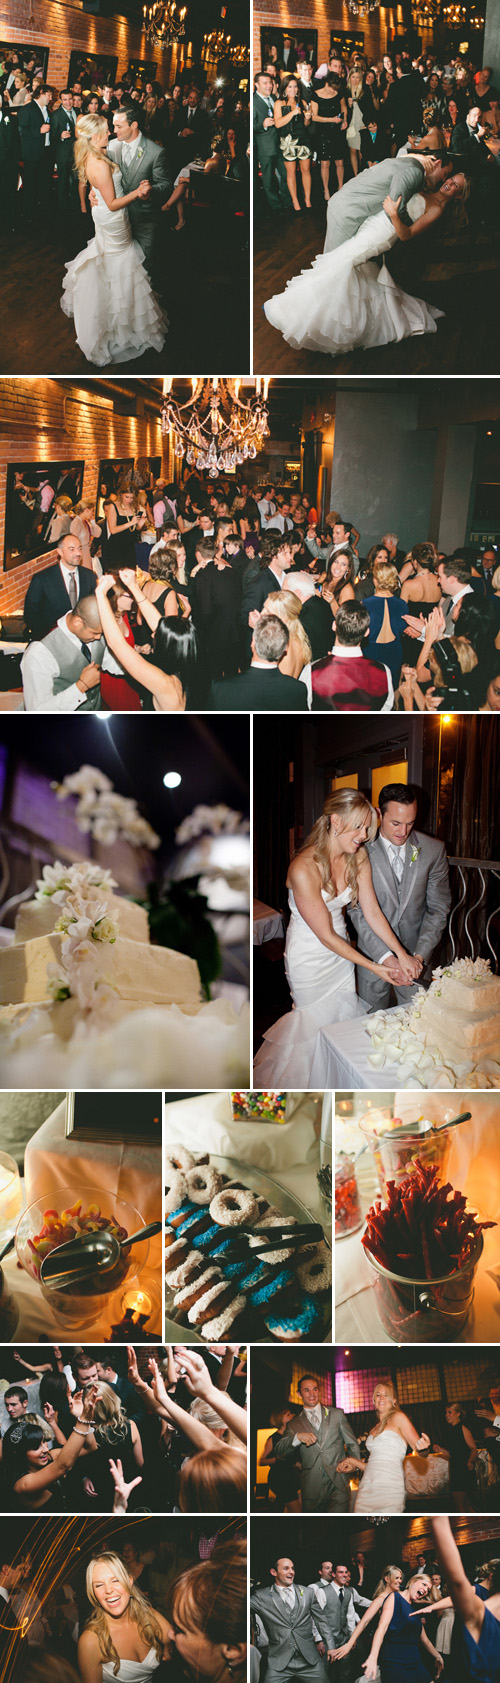 romantic Vancouver, BC wedding at The Brix Restaurant, navy and white wedding colors